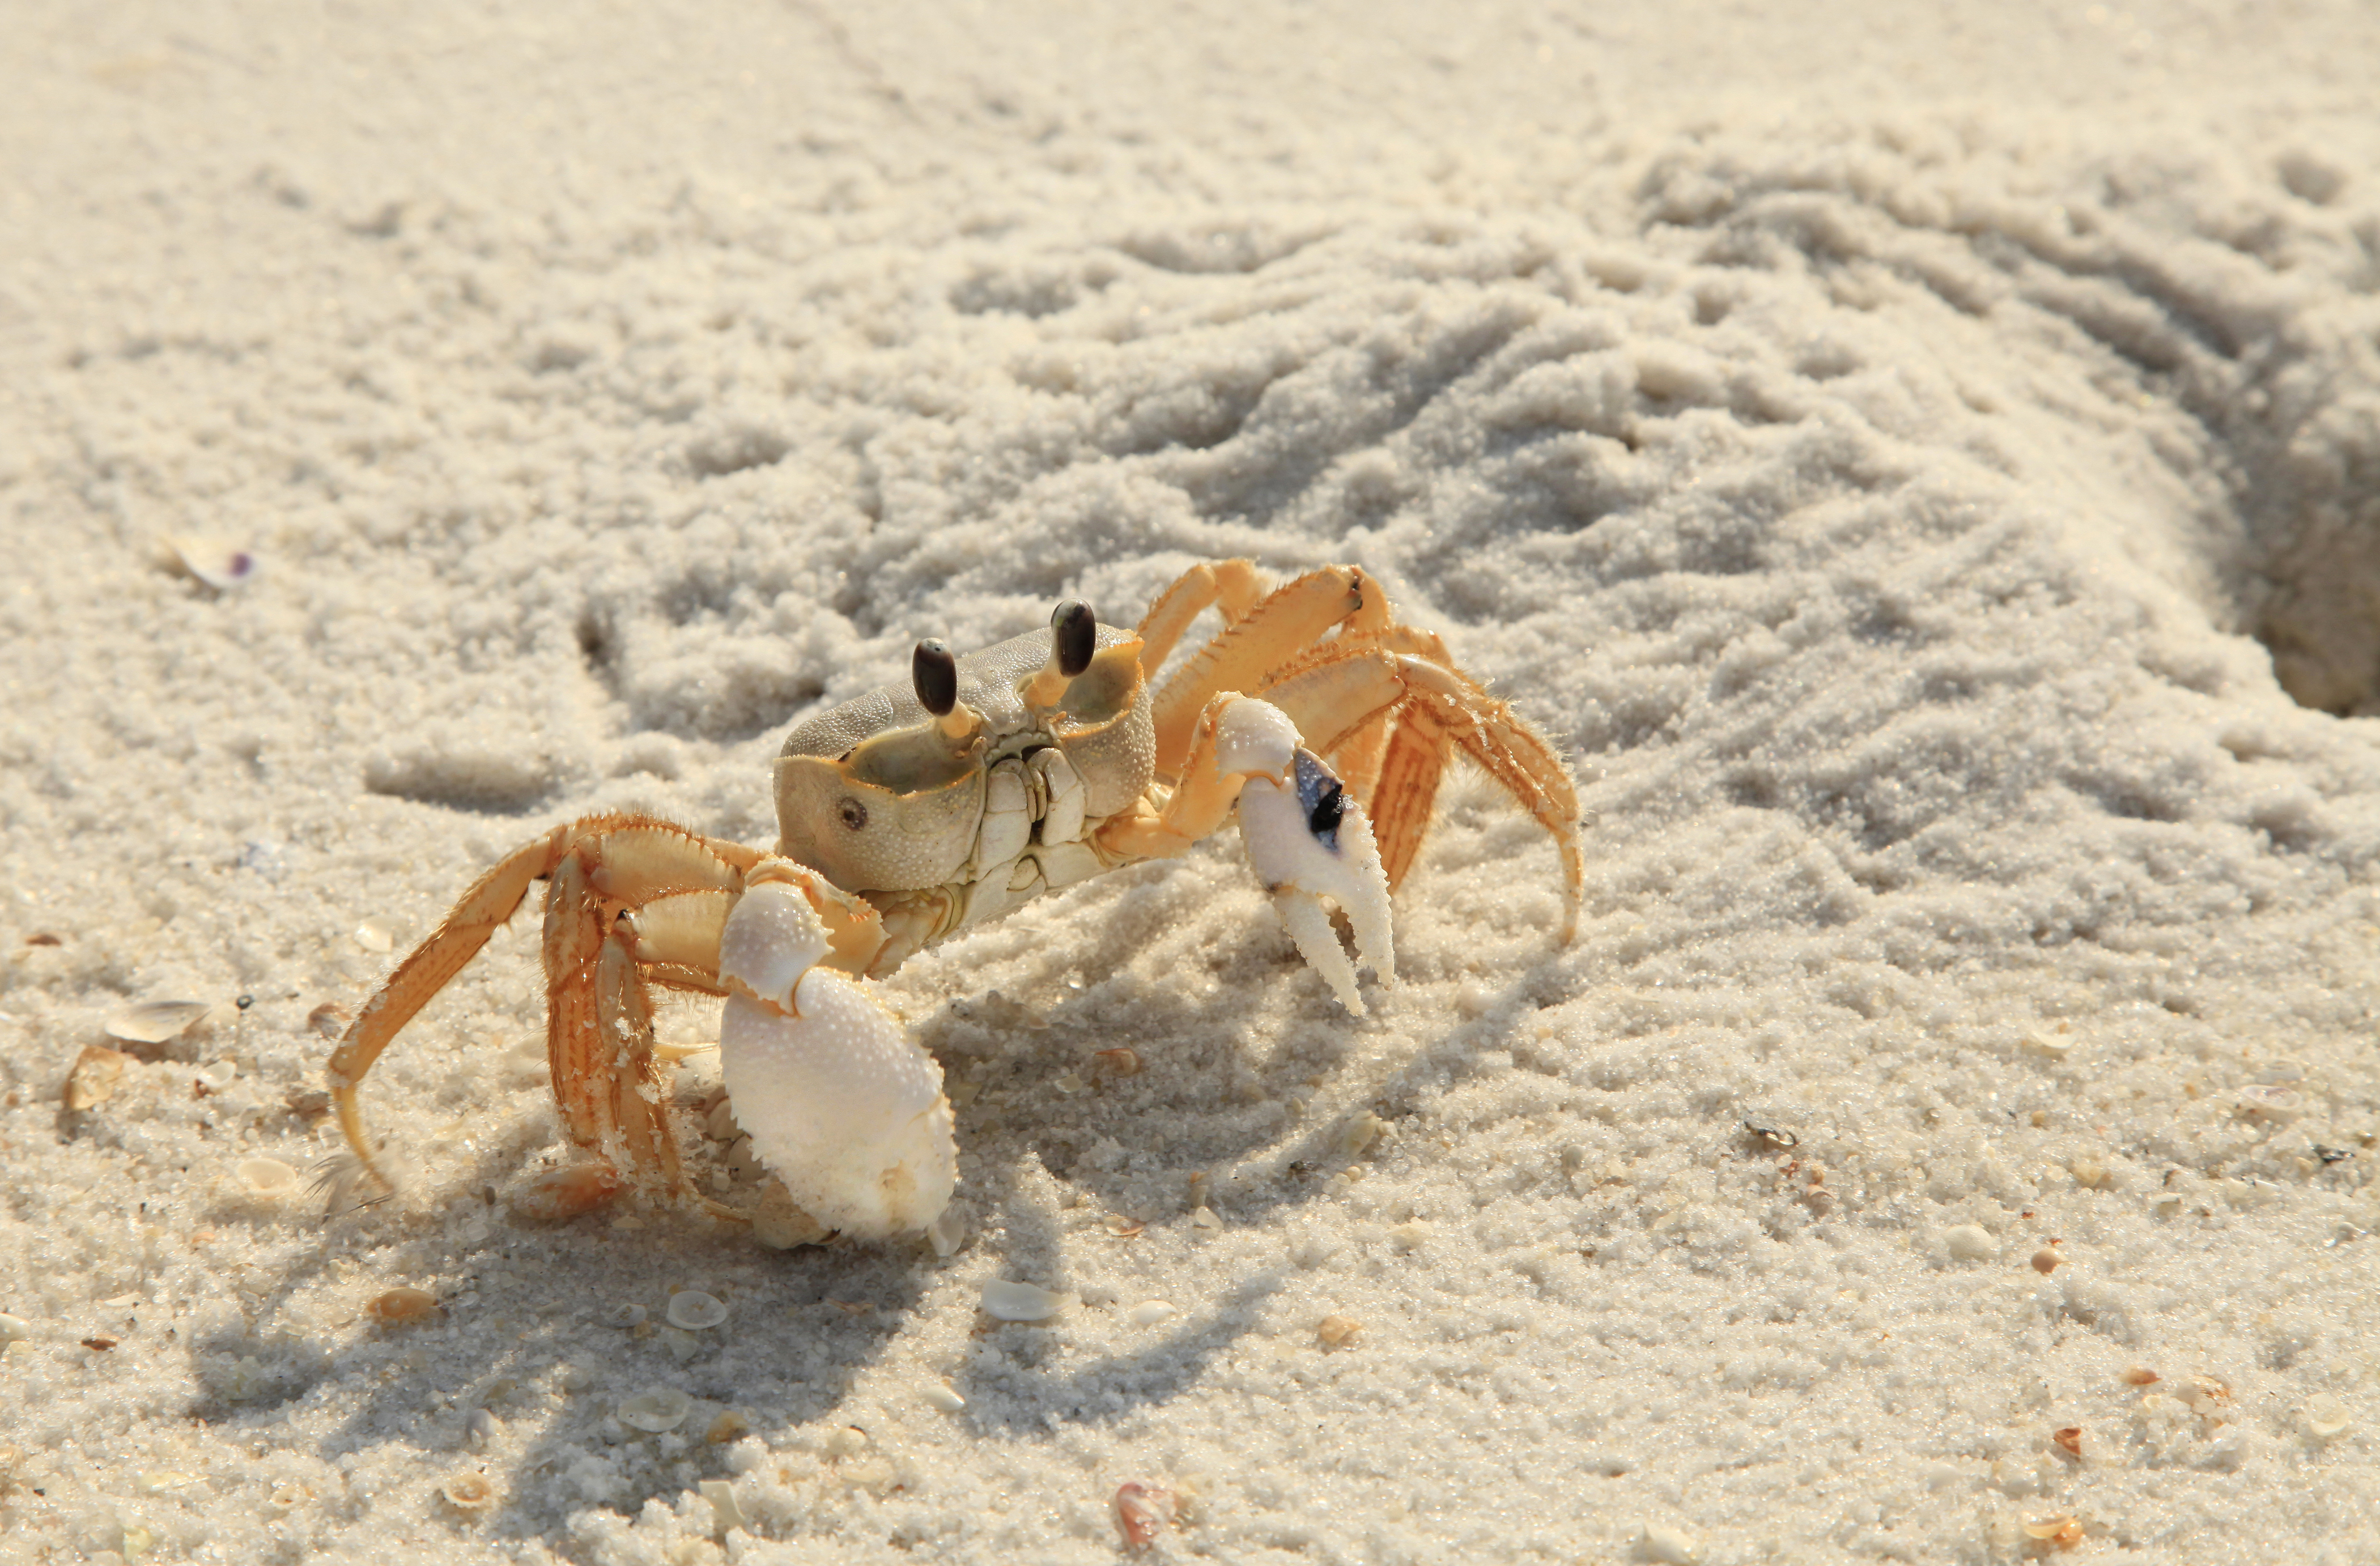 Beach Fill Effects on Sand Critters